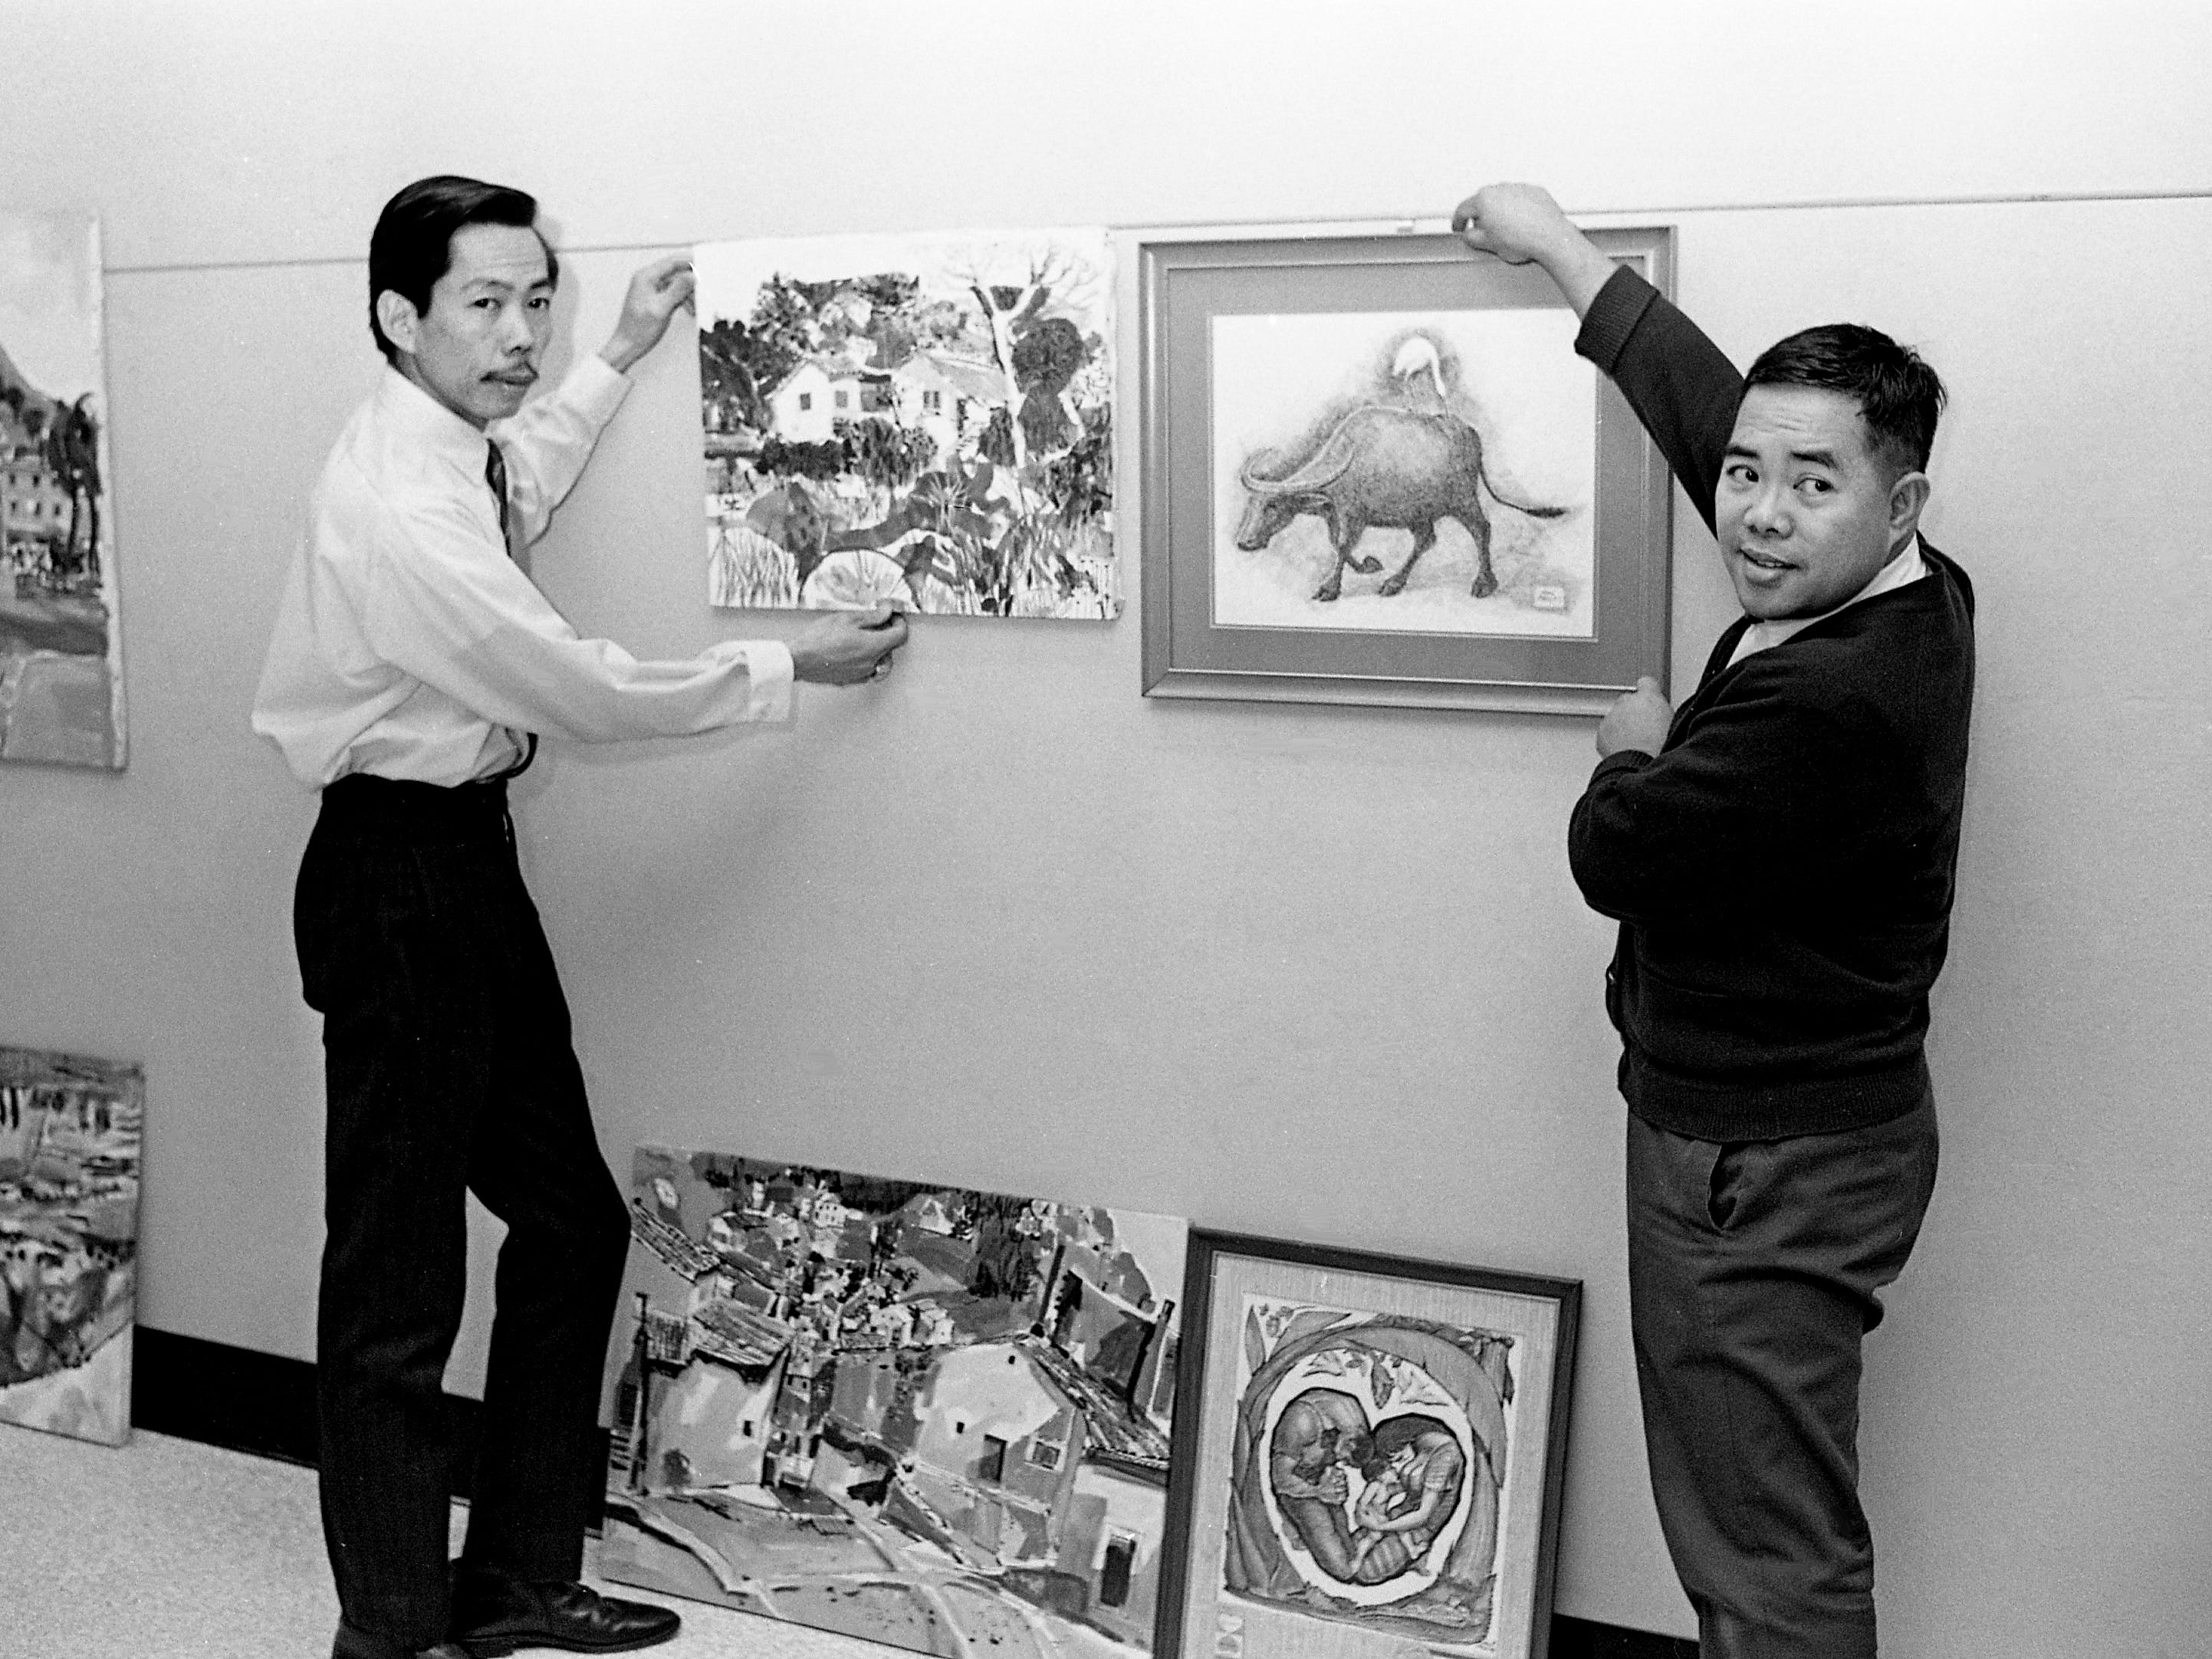 Lito David, left, and Dani Aguila, natives of the Philippines, set up their two-man show of paintings and drawings Jan. 2, 1969, at the Parthenon in Centennial Park. Philippine Ambassador Salvador P. Lopez was set to attend the opening reception.